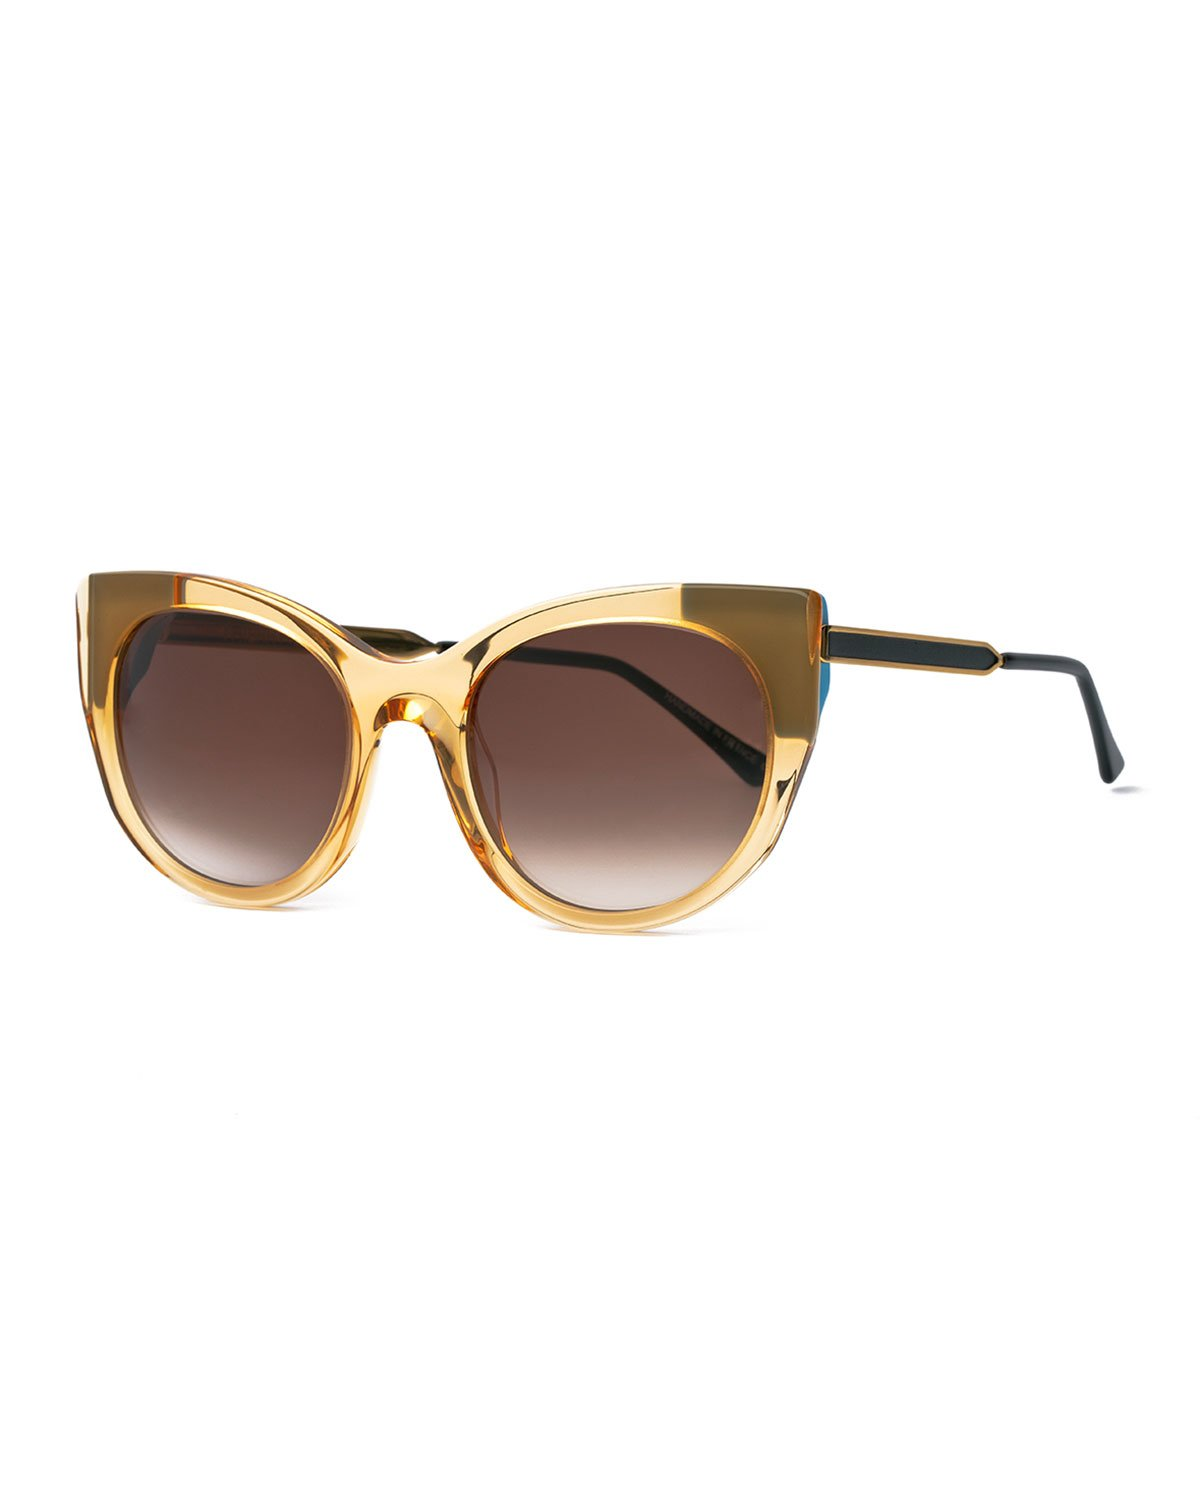 5f6744b621 Lyst - Thierry Lasry Bunny Cat-eye Sunglasses in Yellow